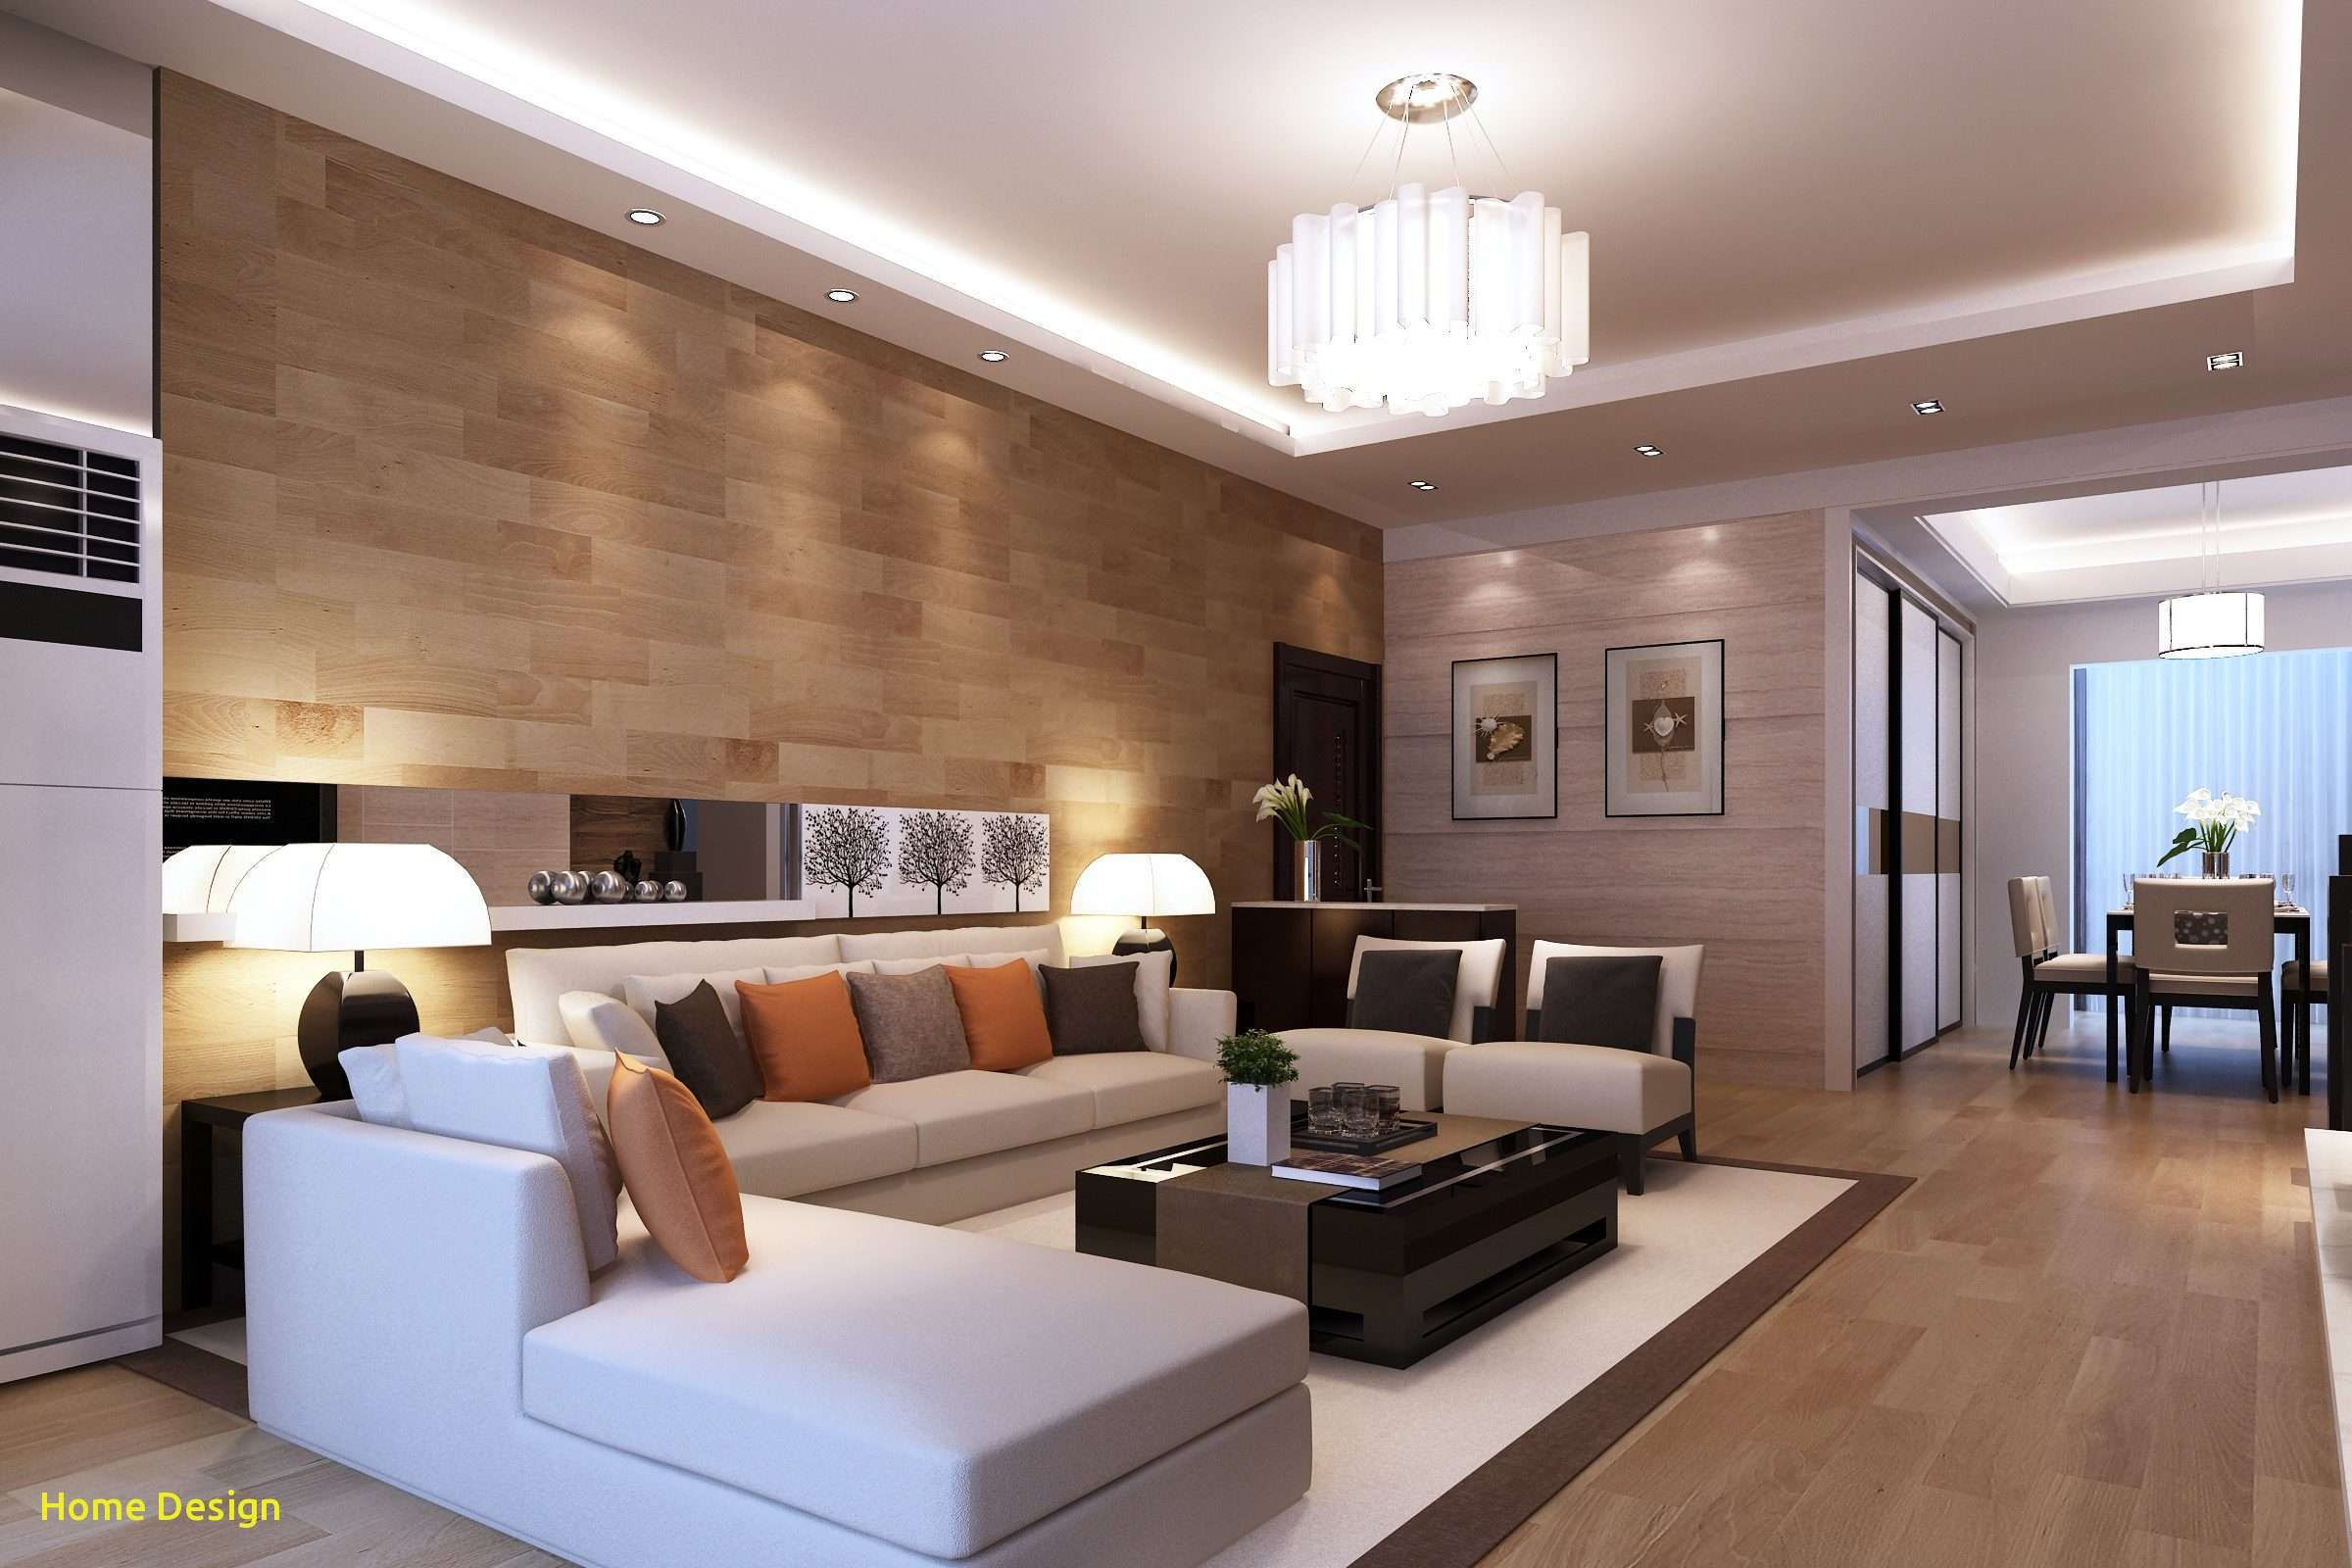 Exquisite Ideas L Shaped Living Dining Room Design Ideas L Shaped Regarding L Shaped Lounge L Shaped Living Room Living Room Design Modern Living Room Interior L living room designs